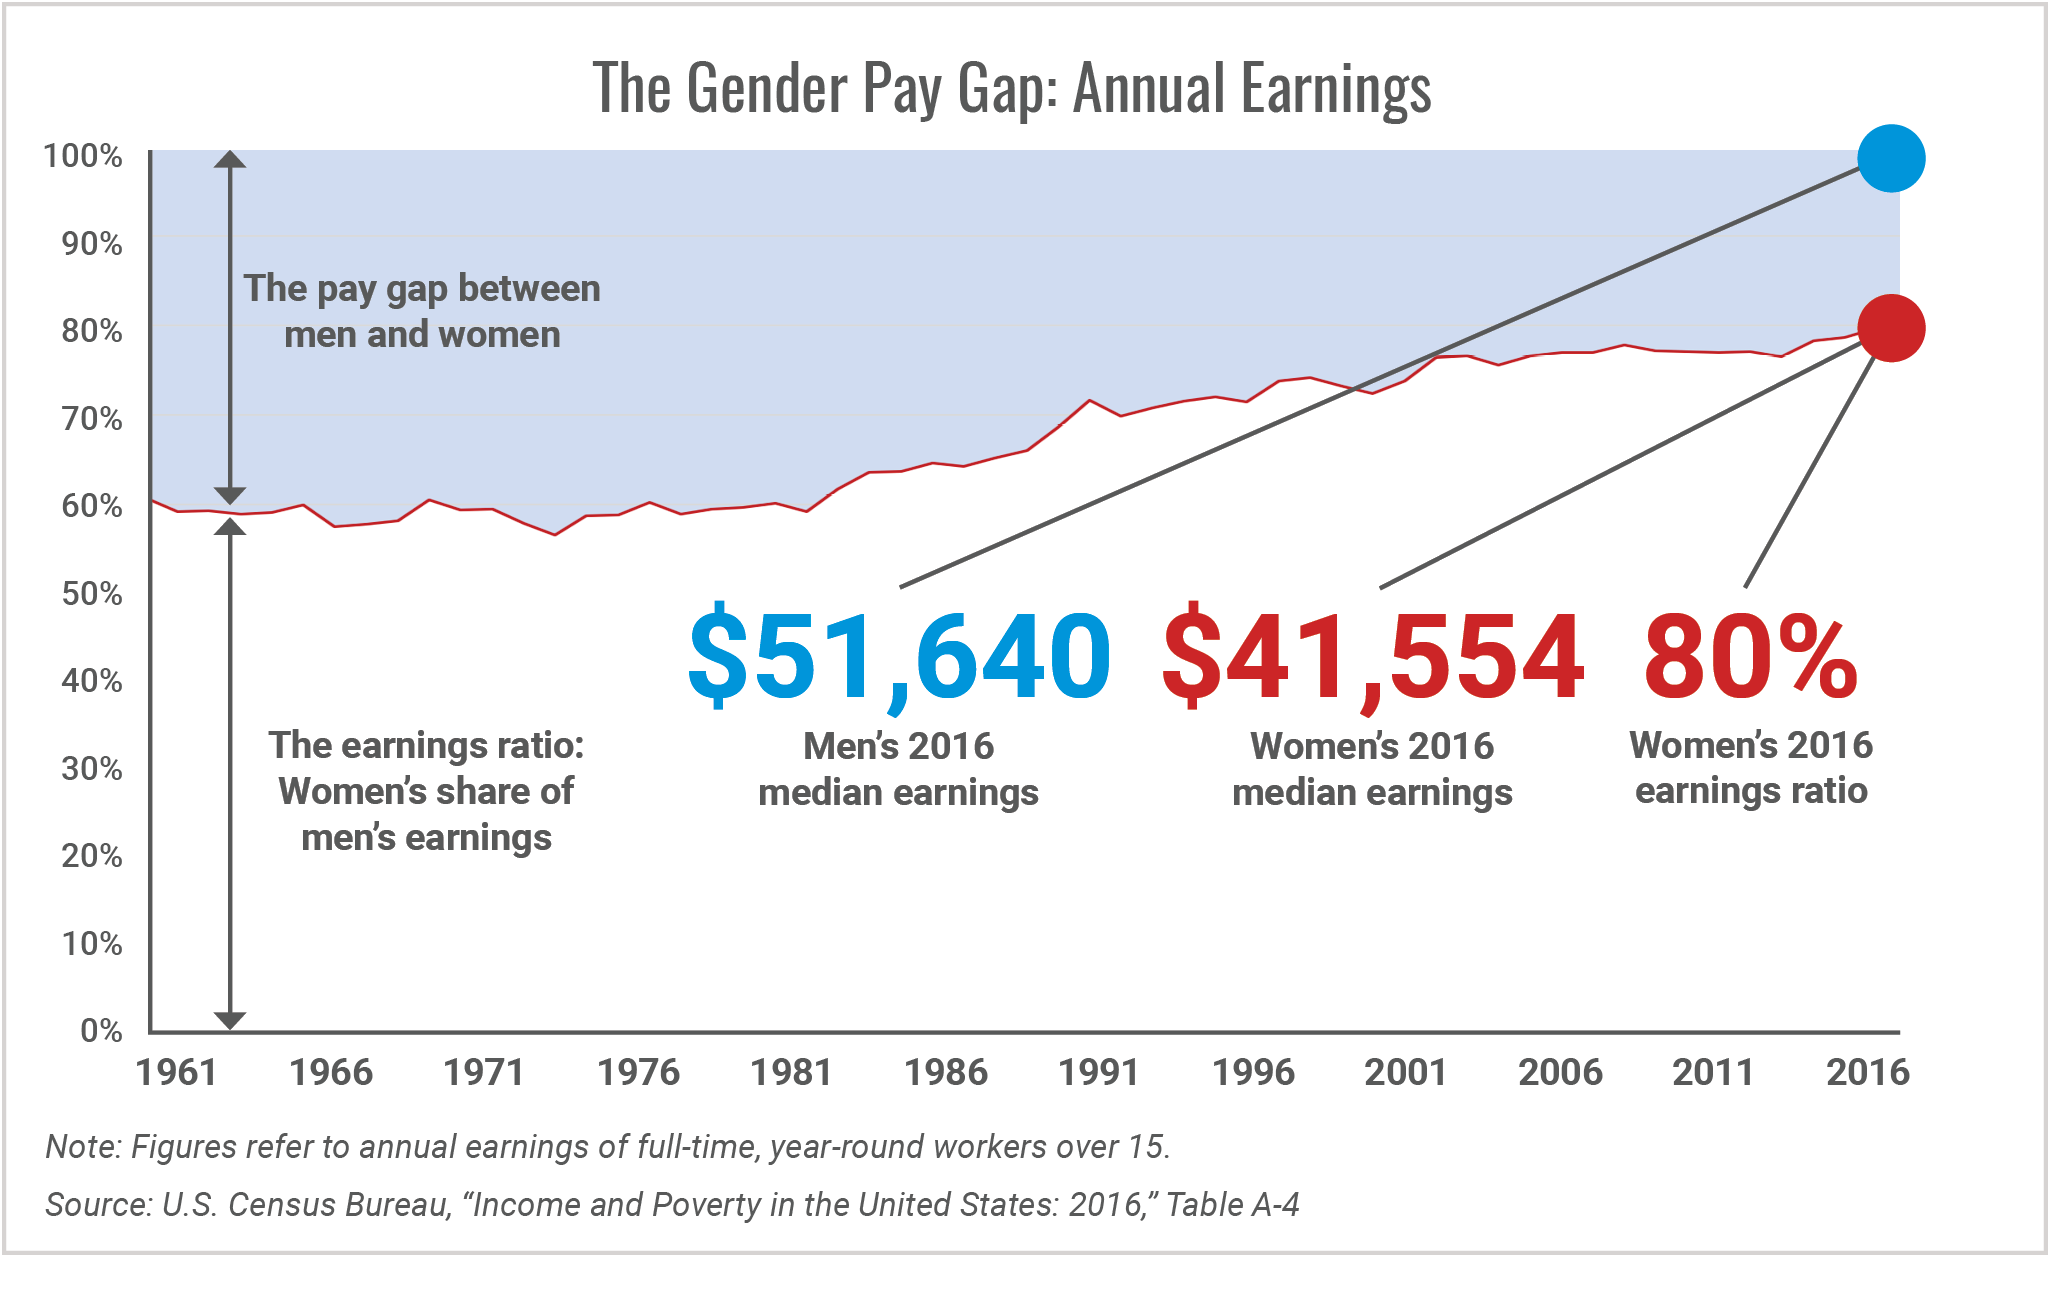 The Gender Pay Gap Annual Earnings